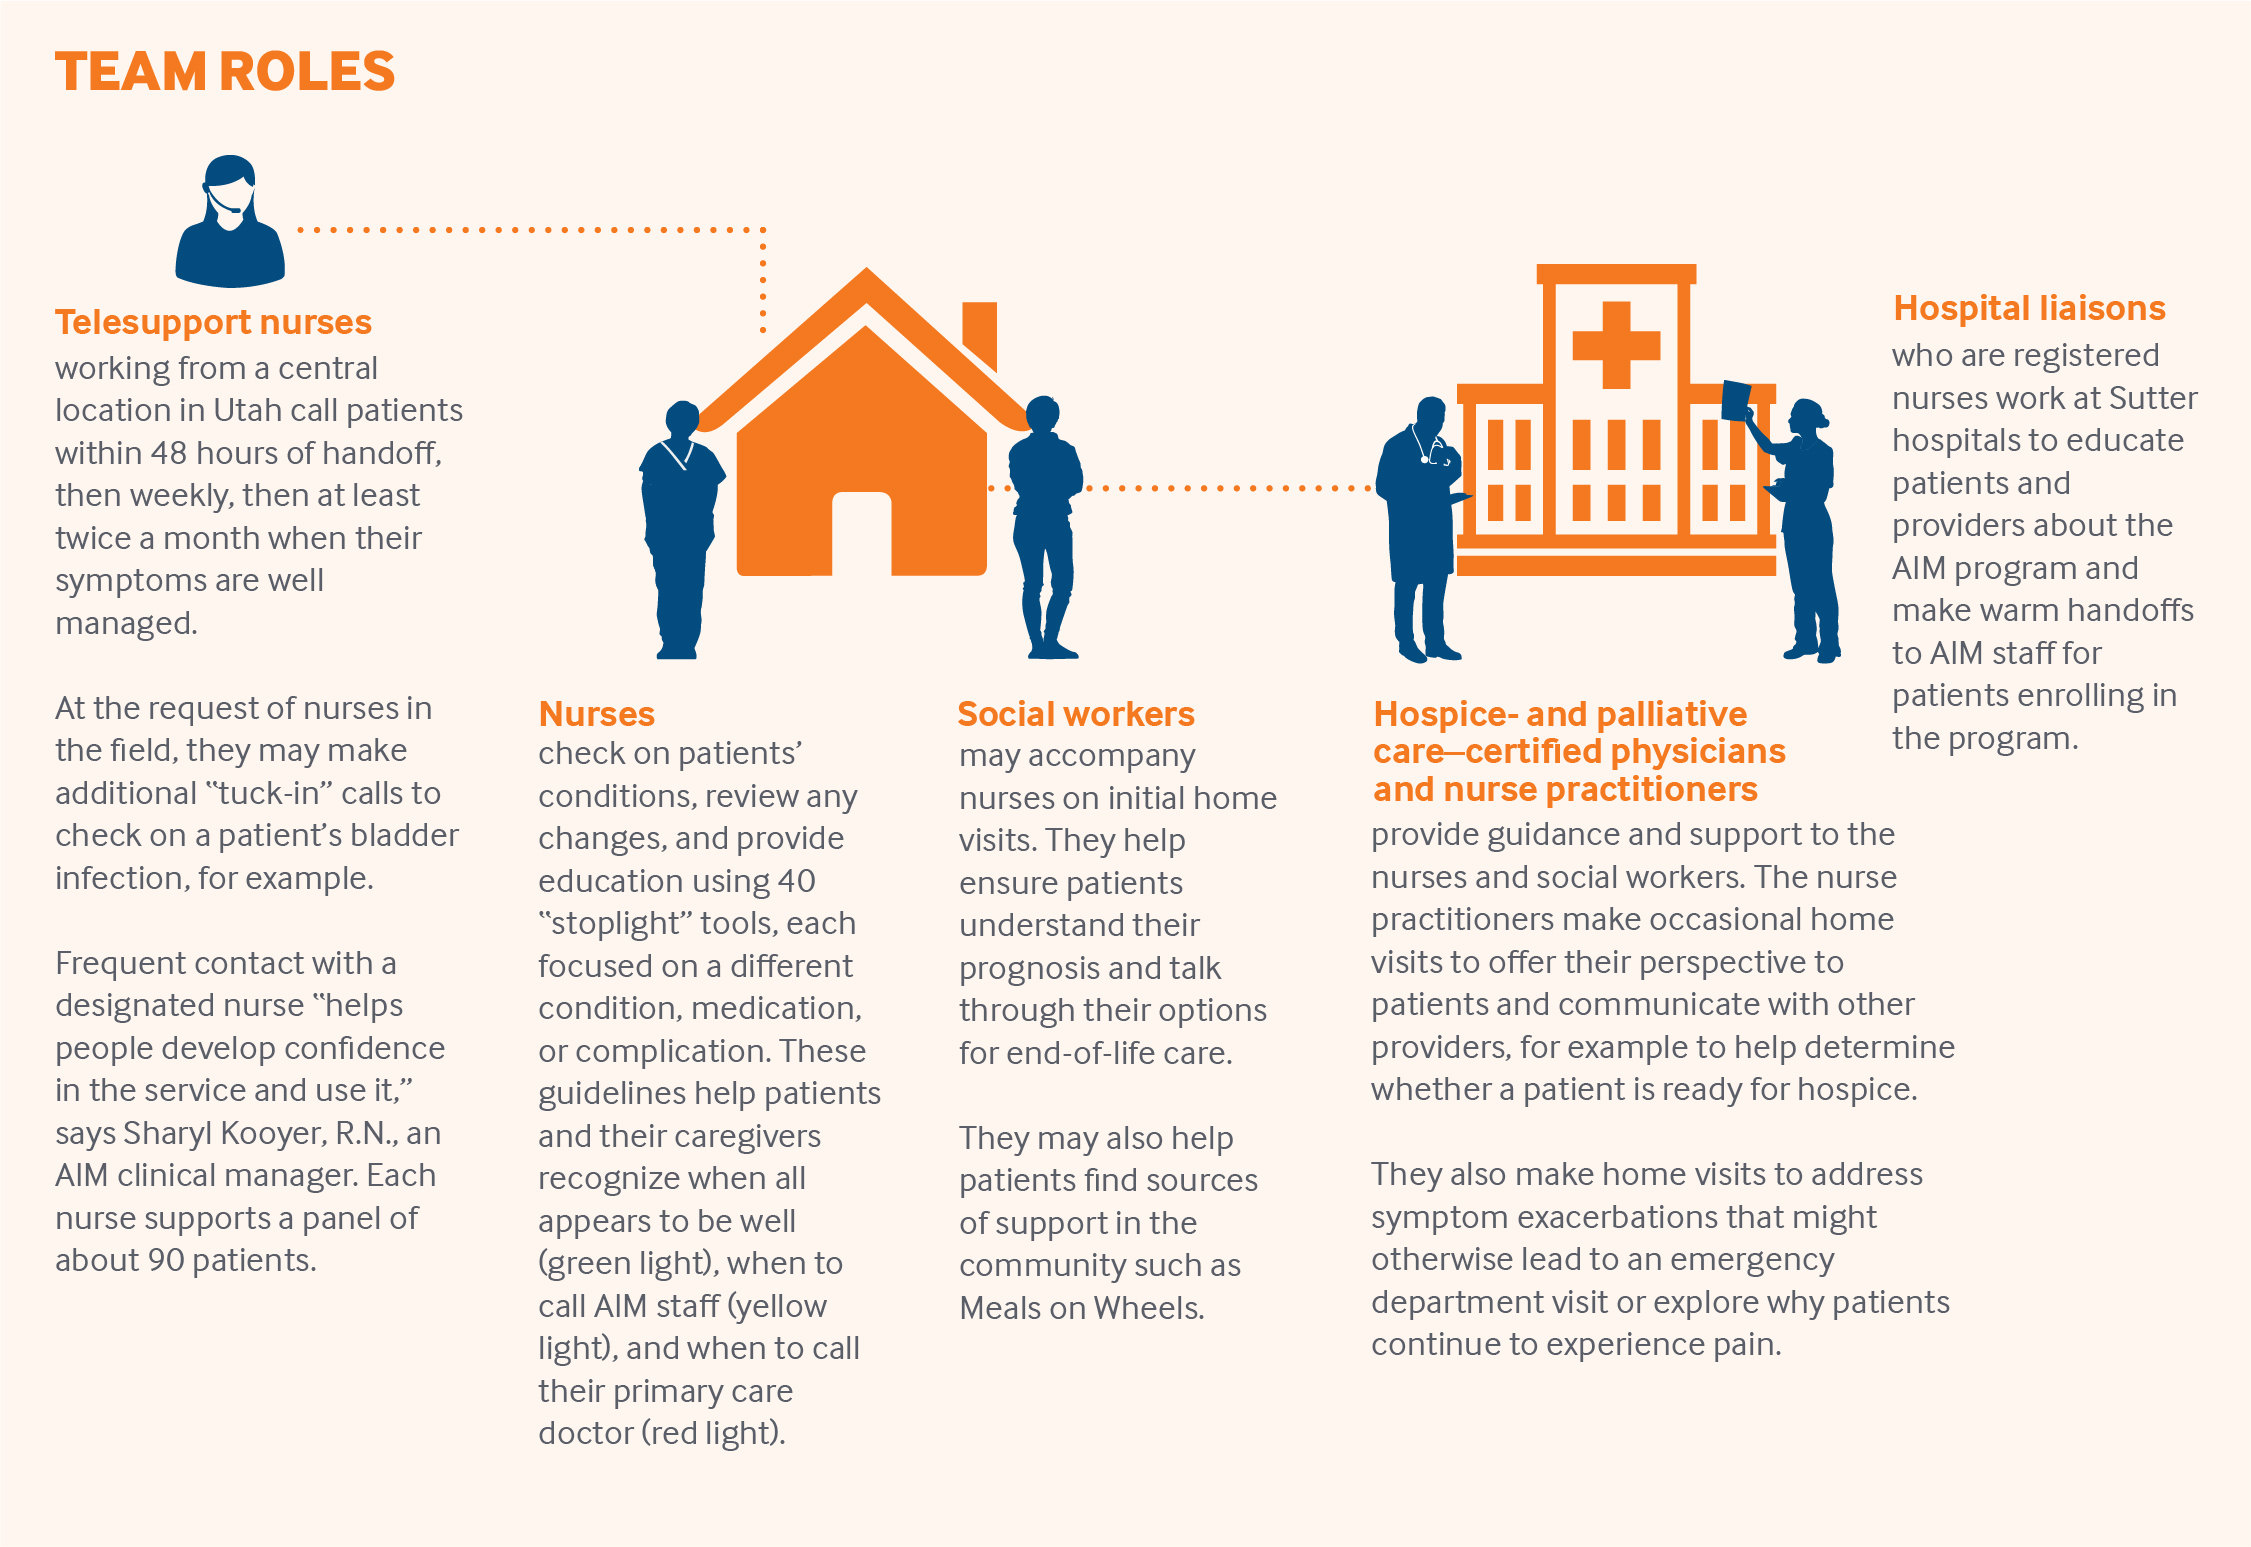 transforming palliative care in nursing homes the social work role endoflife care a series